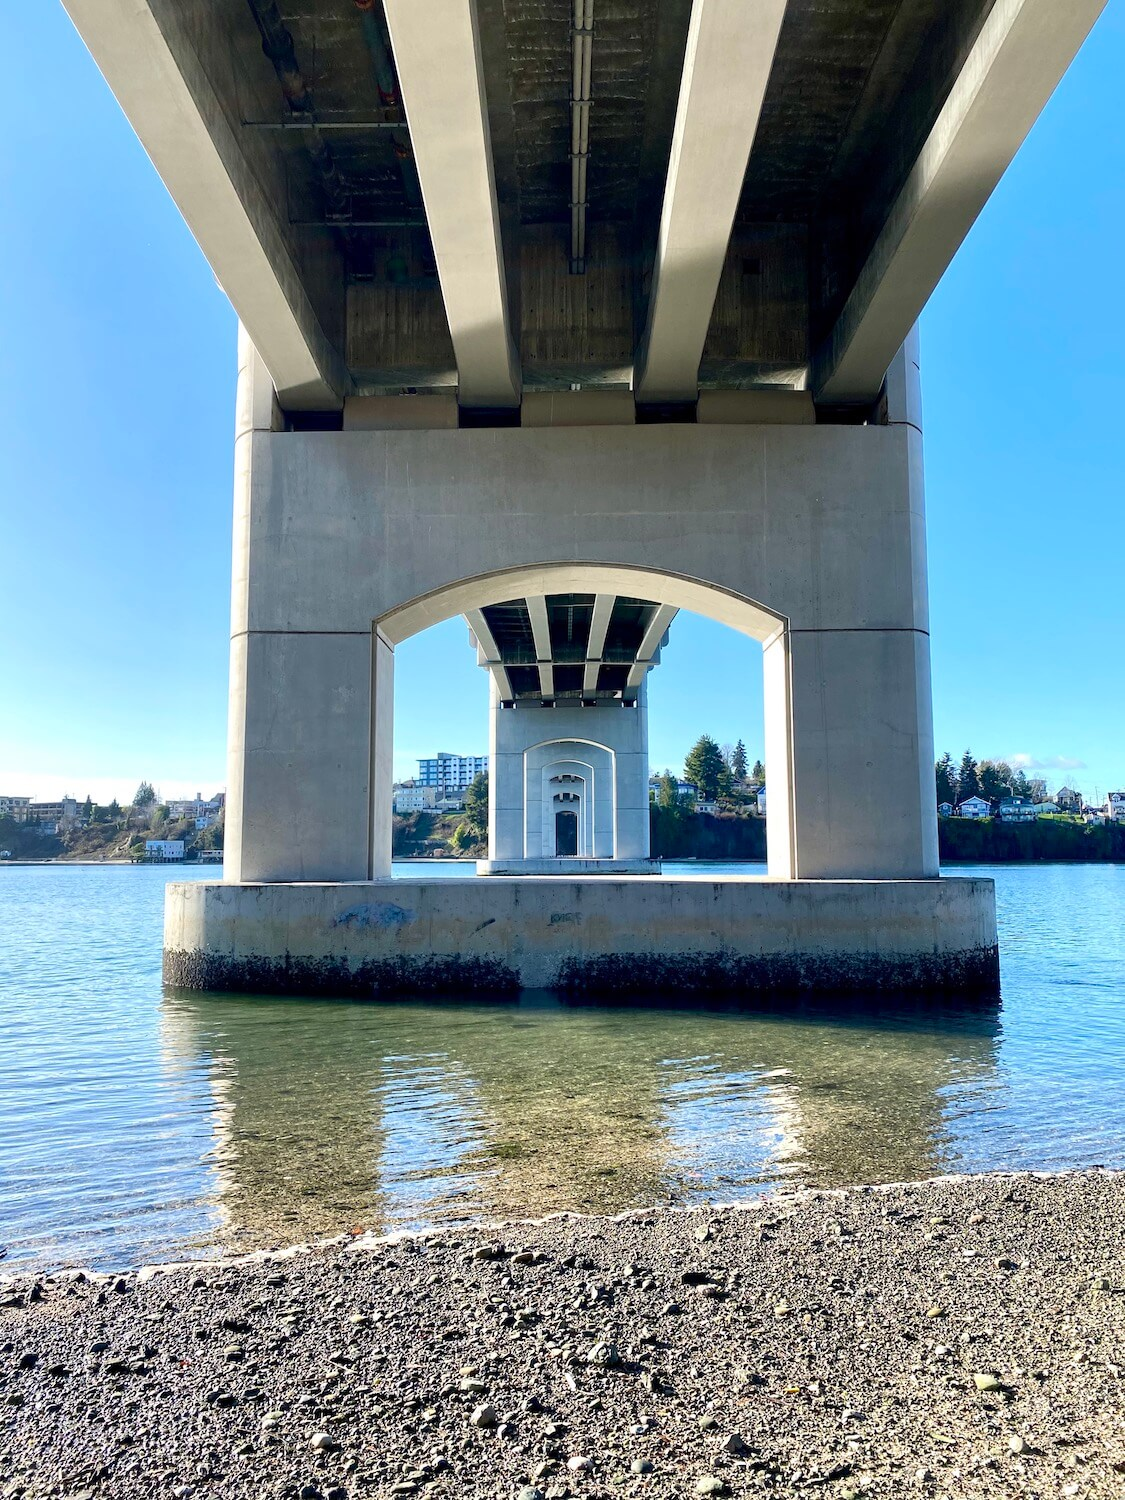 The underside of Manette Bridge, with a water view shows blue sky against the concrete support structures of the bridge that connects the oceanside community of Manette with the city of Bremerton.